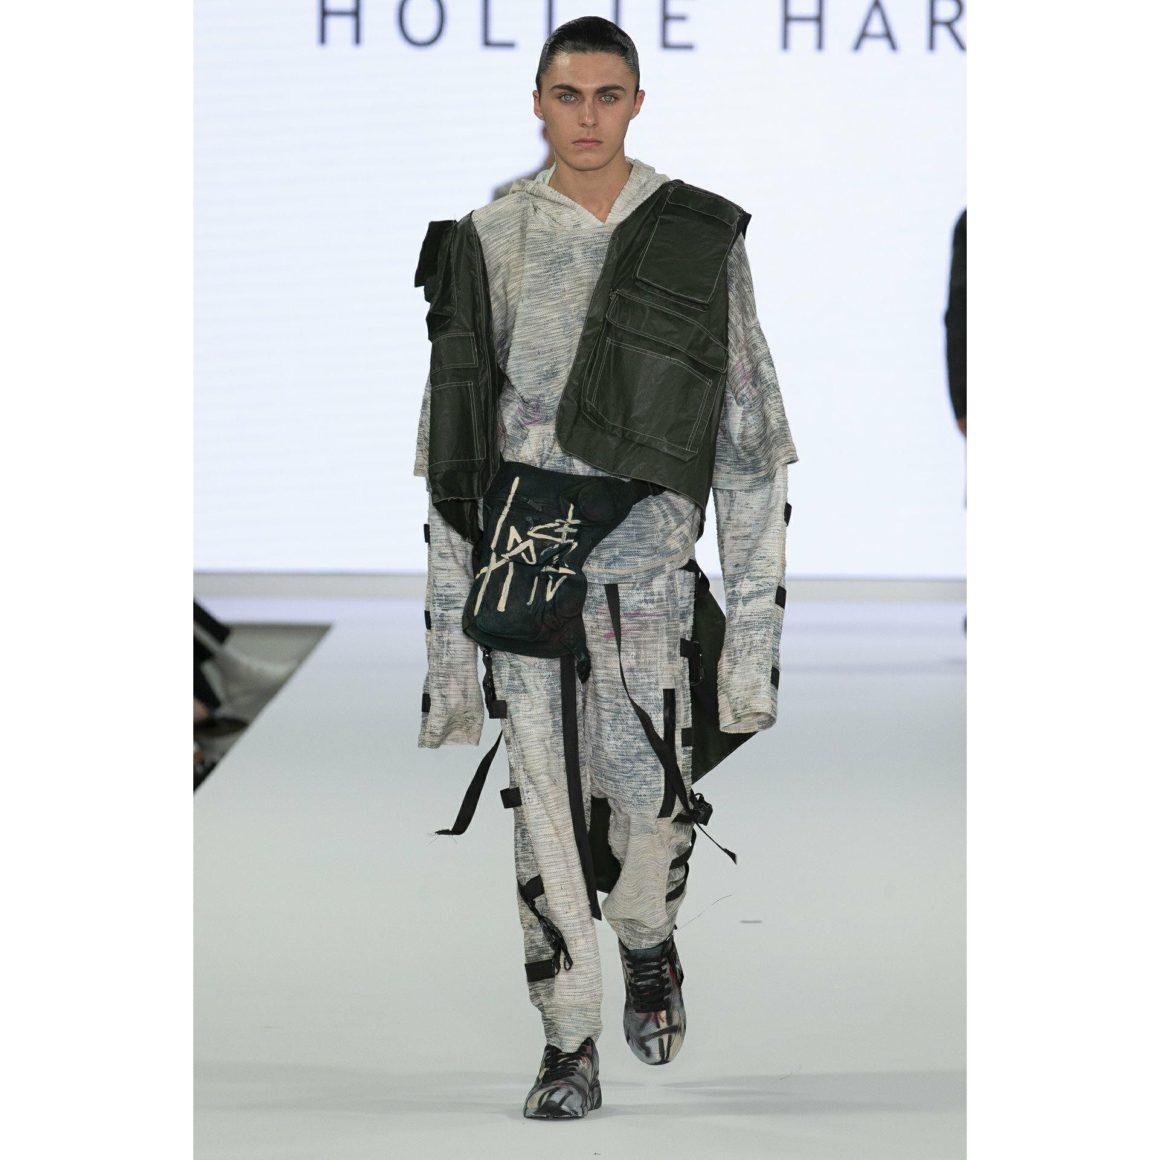 Graduate Fashion Week 2018 Holly Harries 2